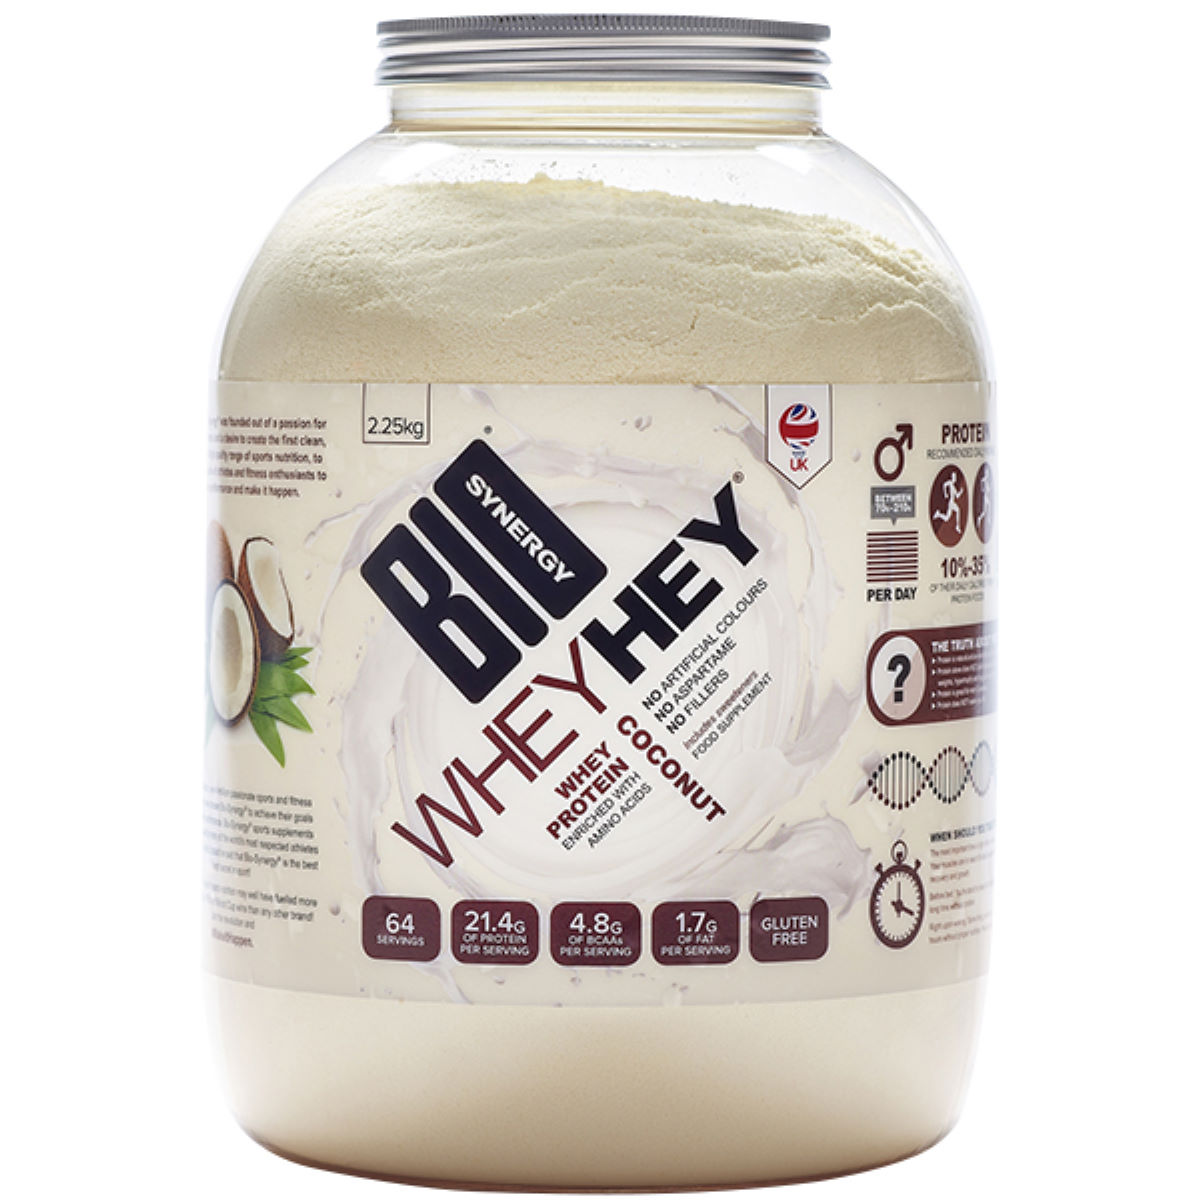 Bio-synergy Whey Hey Coconut Protein Powder (2.25kg) - 2.25kg